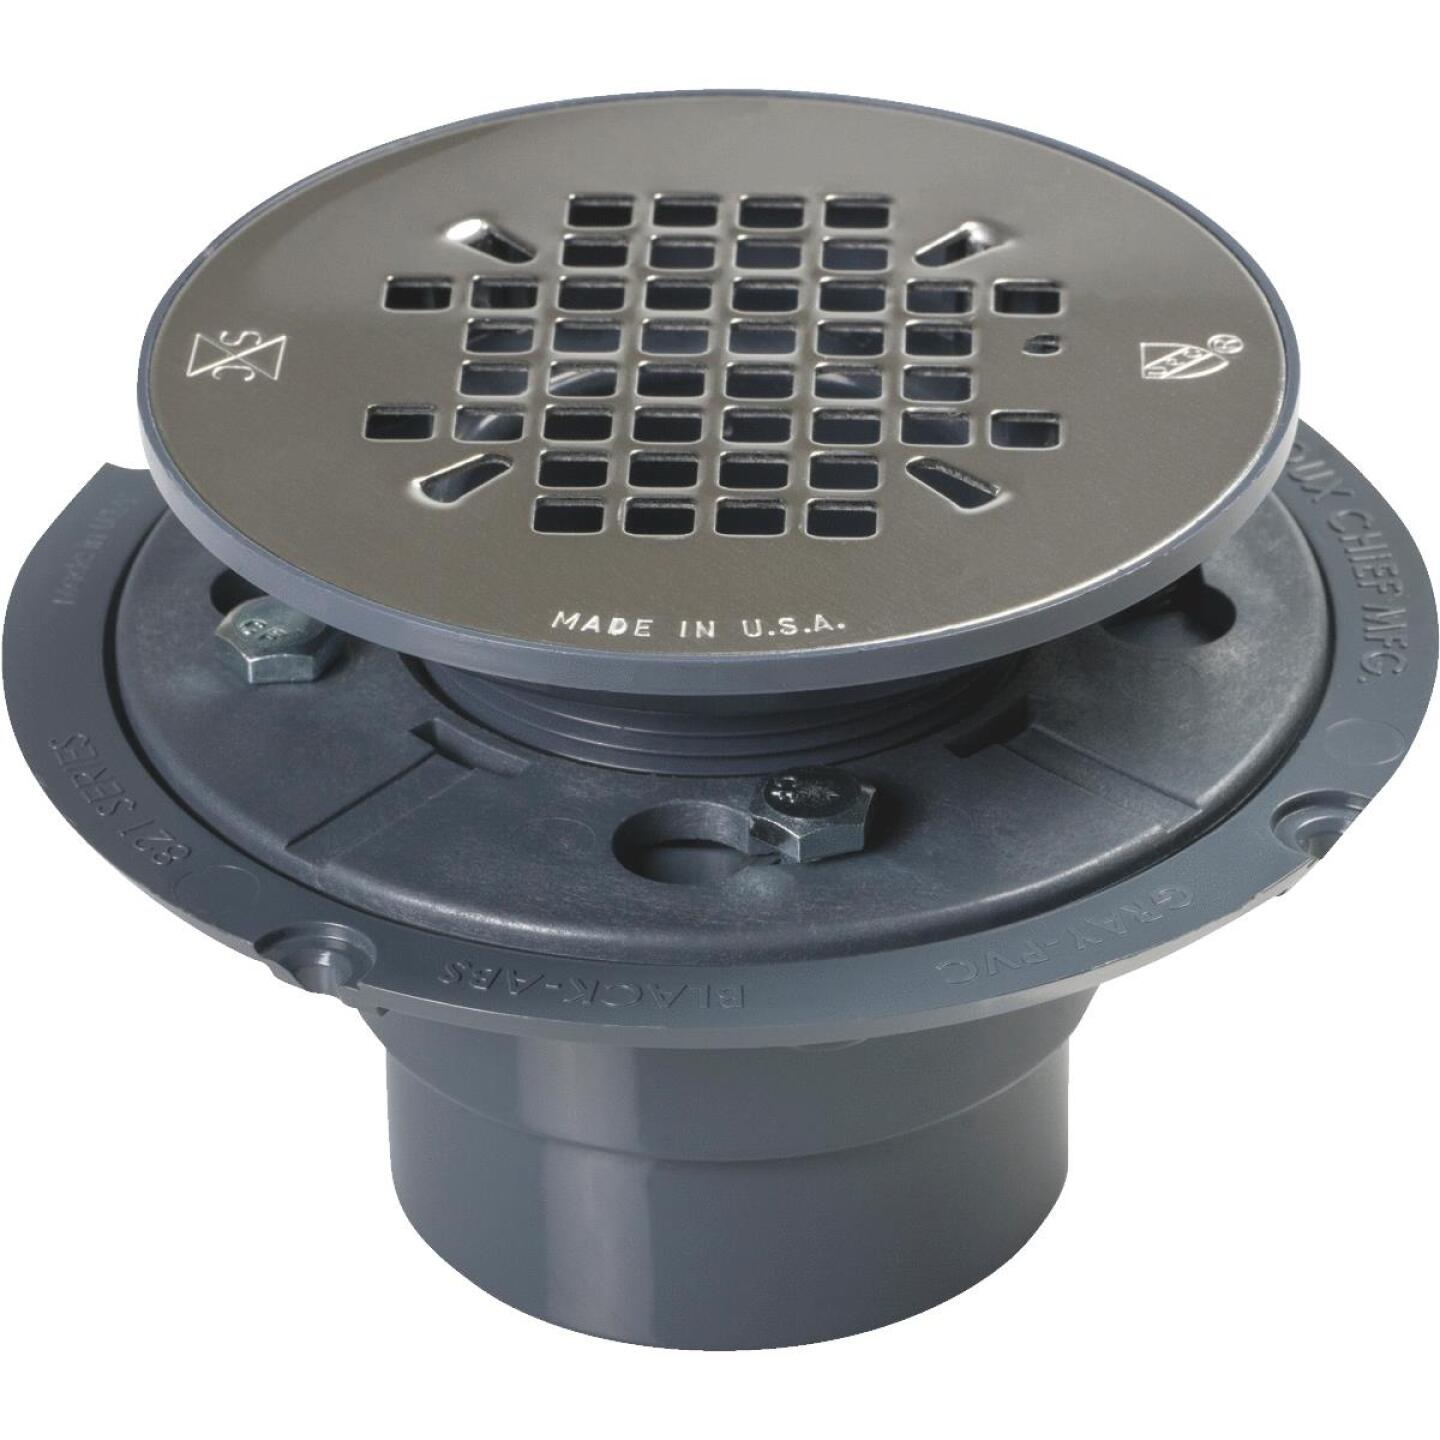 Sioux Chief 2 In. PVC Shower Drain with 4-1/4 In. Stainless Steel Snap-In Strainer Image 1